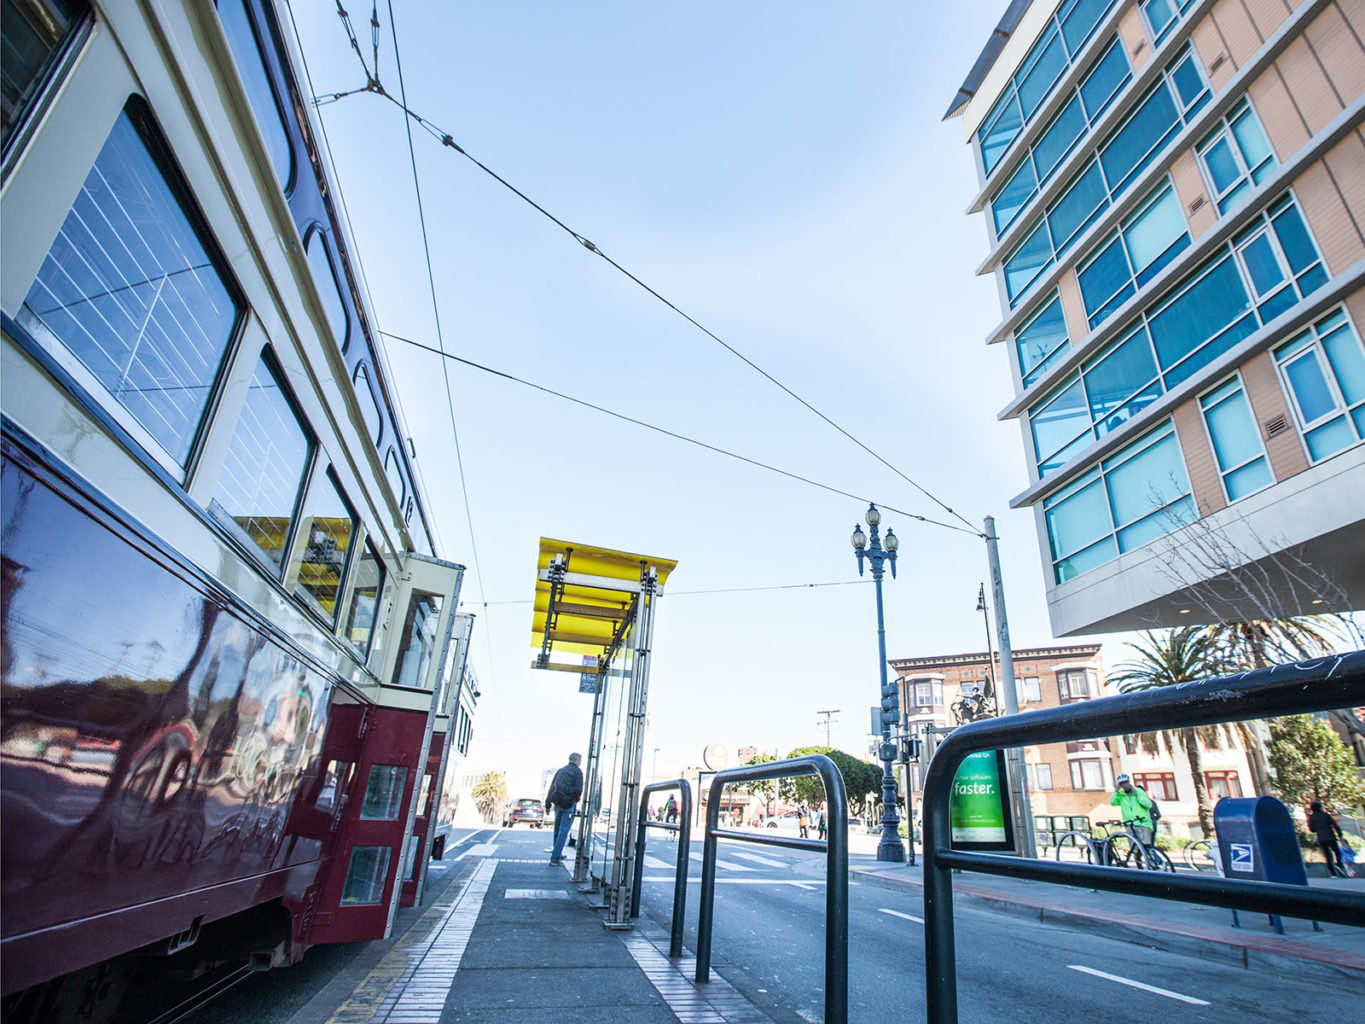 Some academics suggest Senate Bill 827, which sought to upzone neighborhoods in proximity to existing transit corridors, is a groundbreaking bill that could take years to finally become law. (Deborah Svoboda/Special to S.F. Examiner)